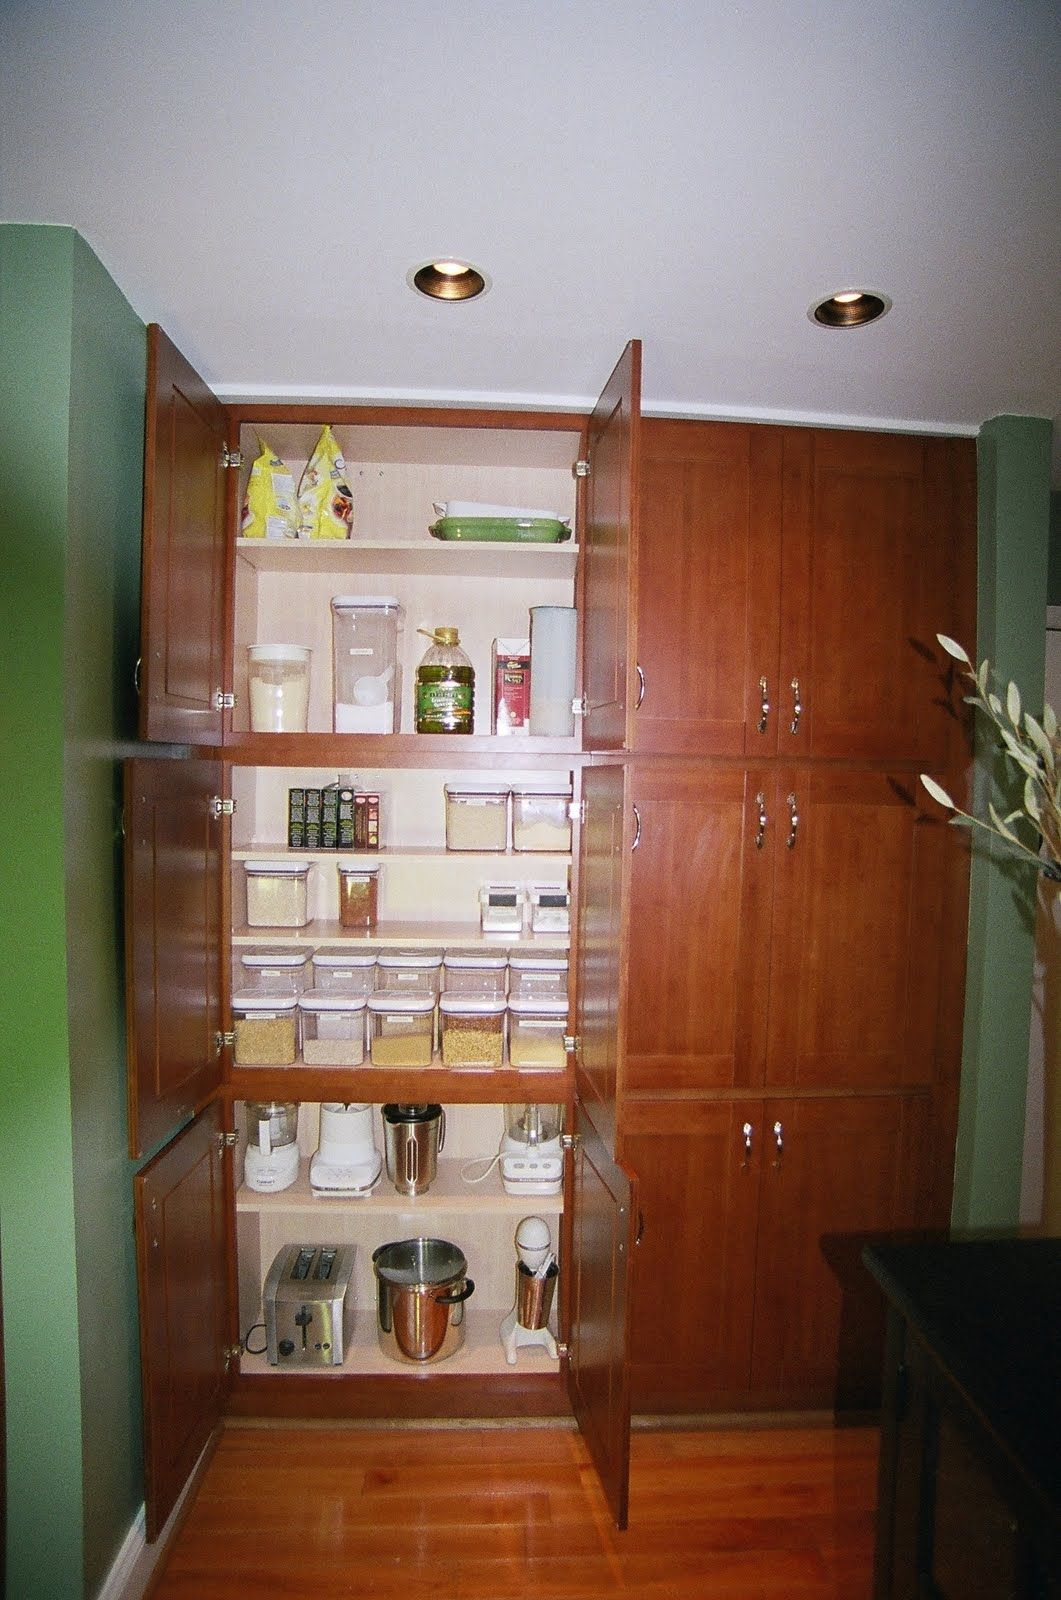 Lumberton Nj Home For Sale Pantry Laundry Room Kitchen Cabinet Layout Kitchen Pantry Furniture Kitchen Pantry Design